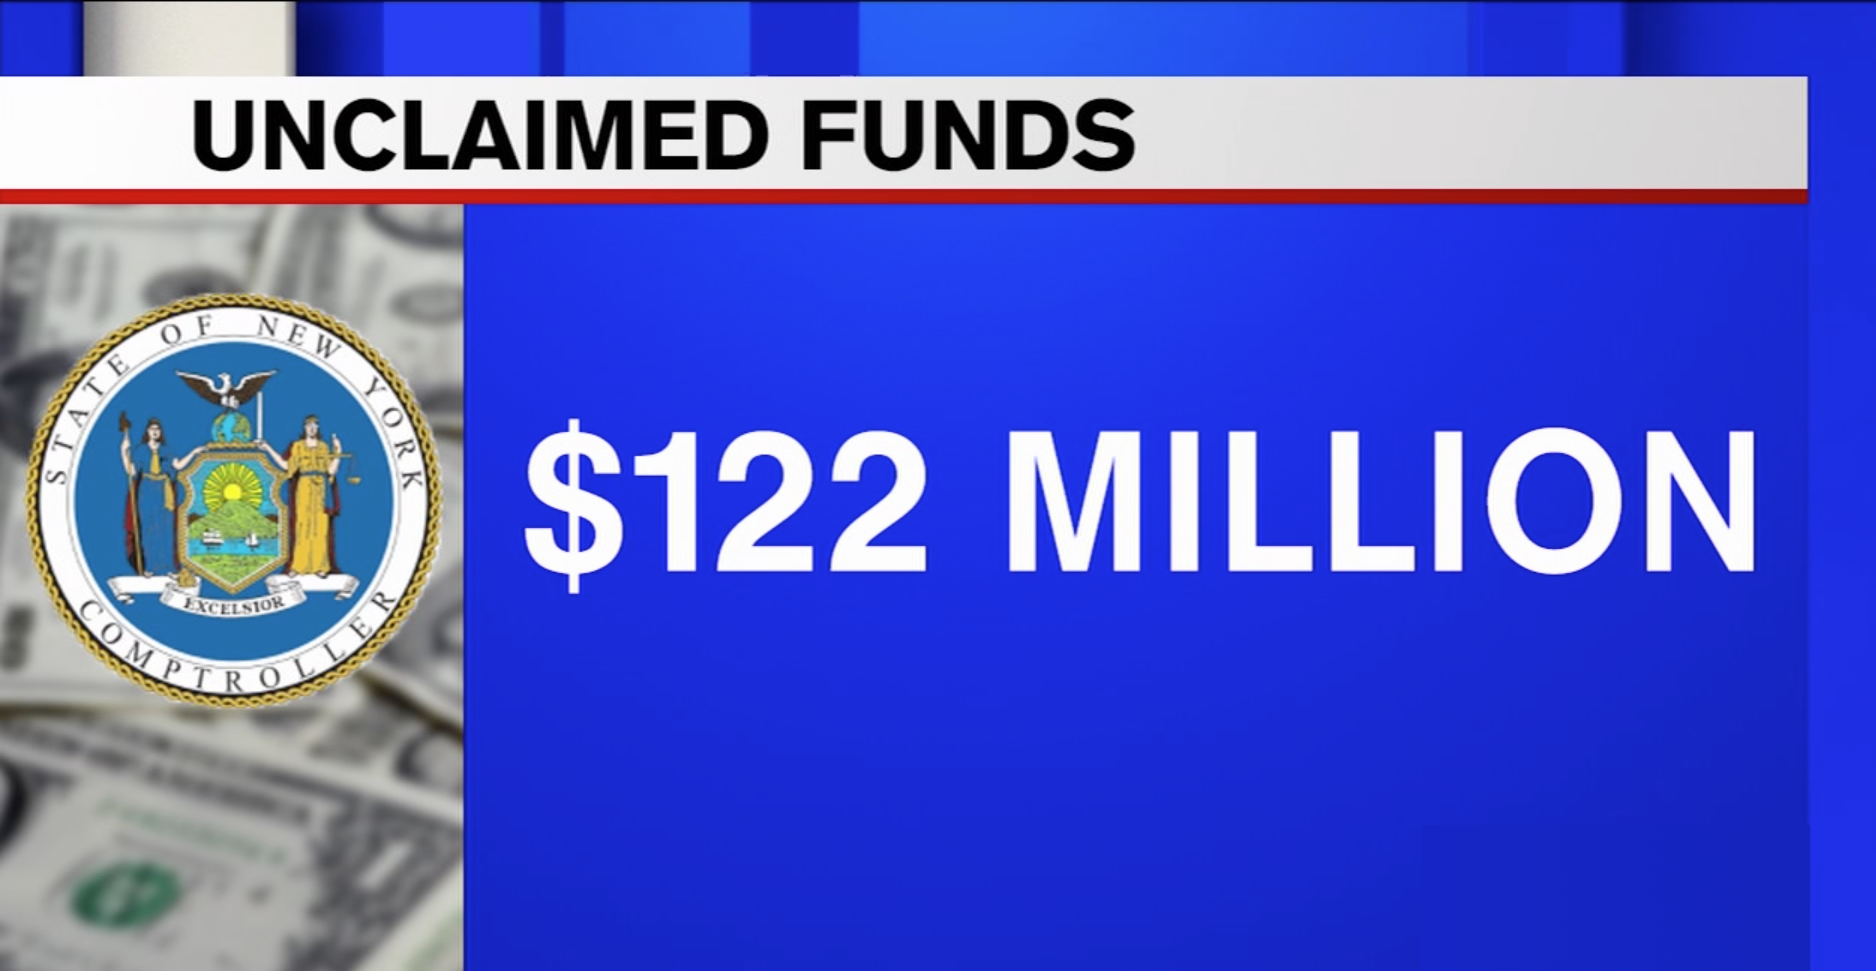 CHECK NOW: New York owes residents millions in unclaimed funds